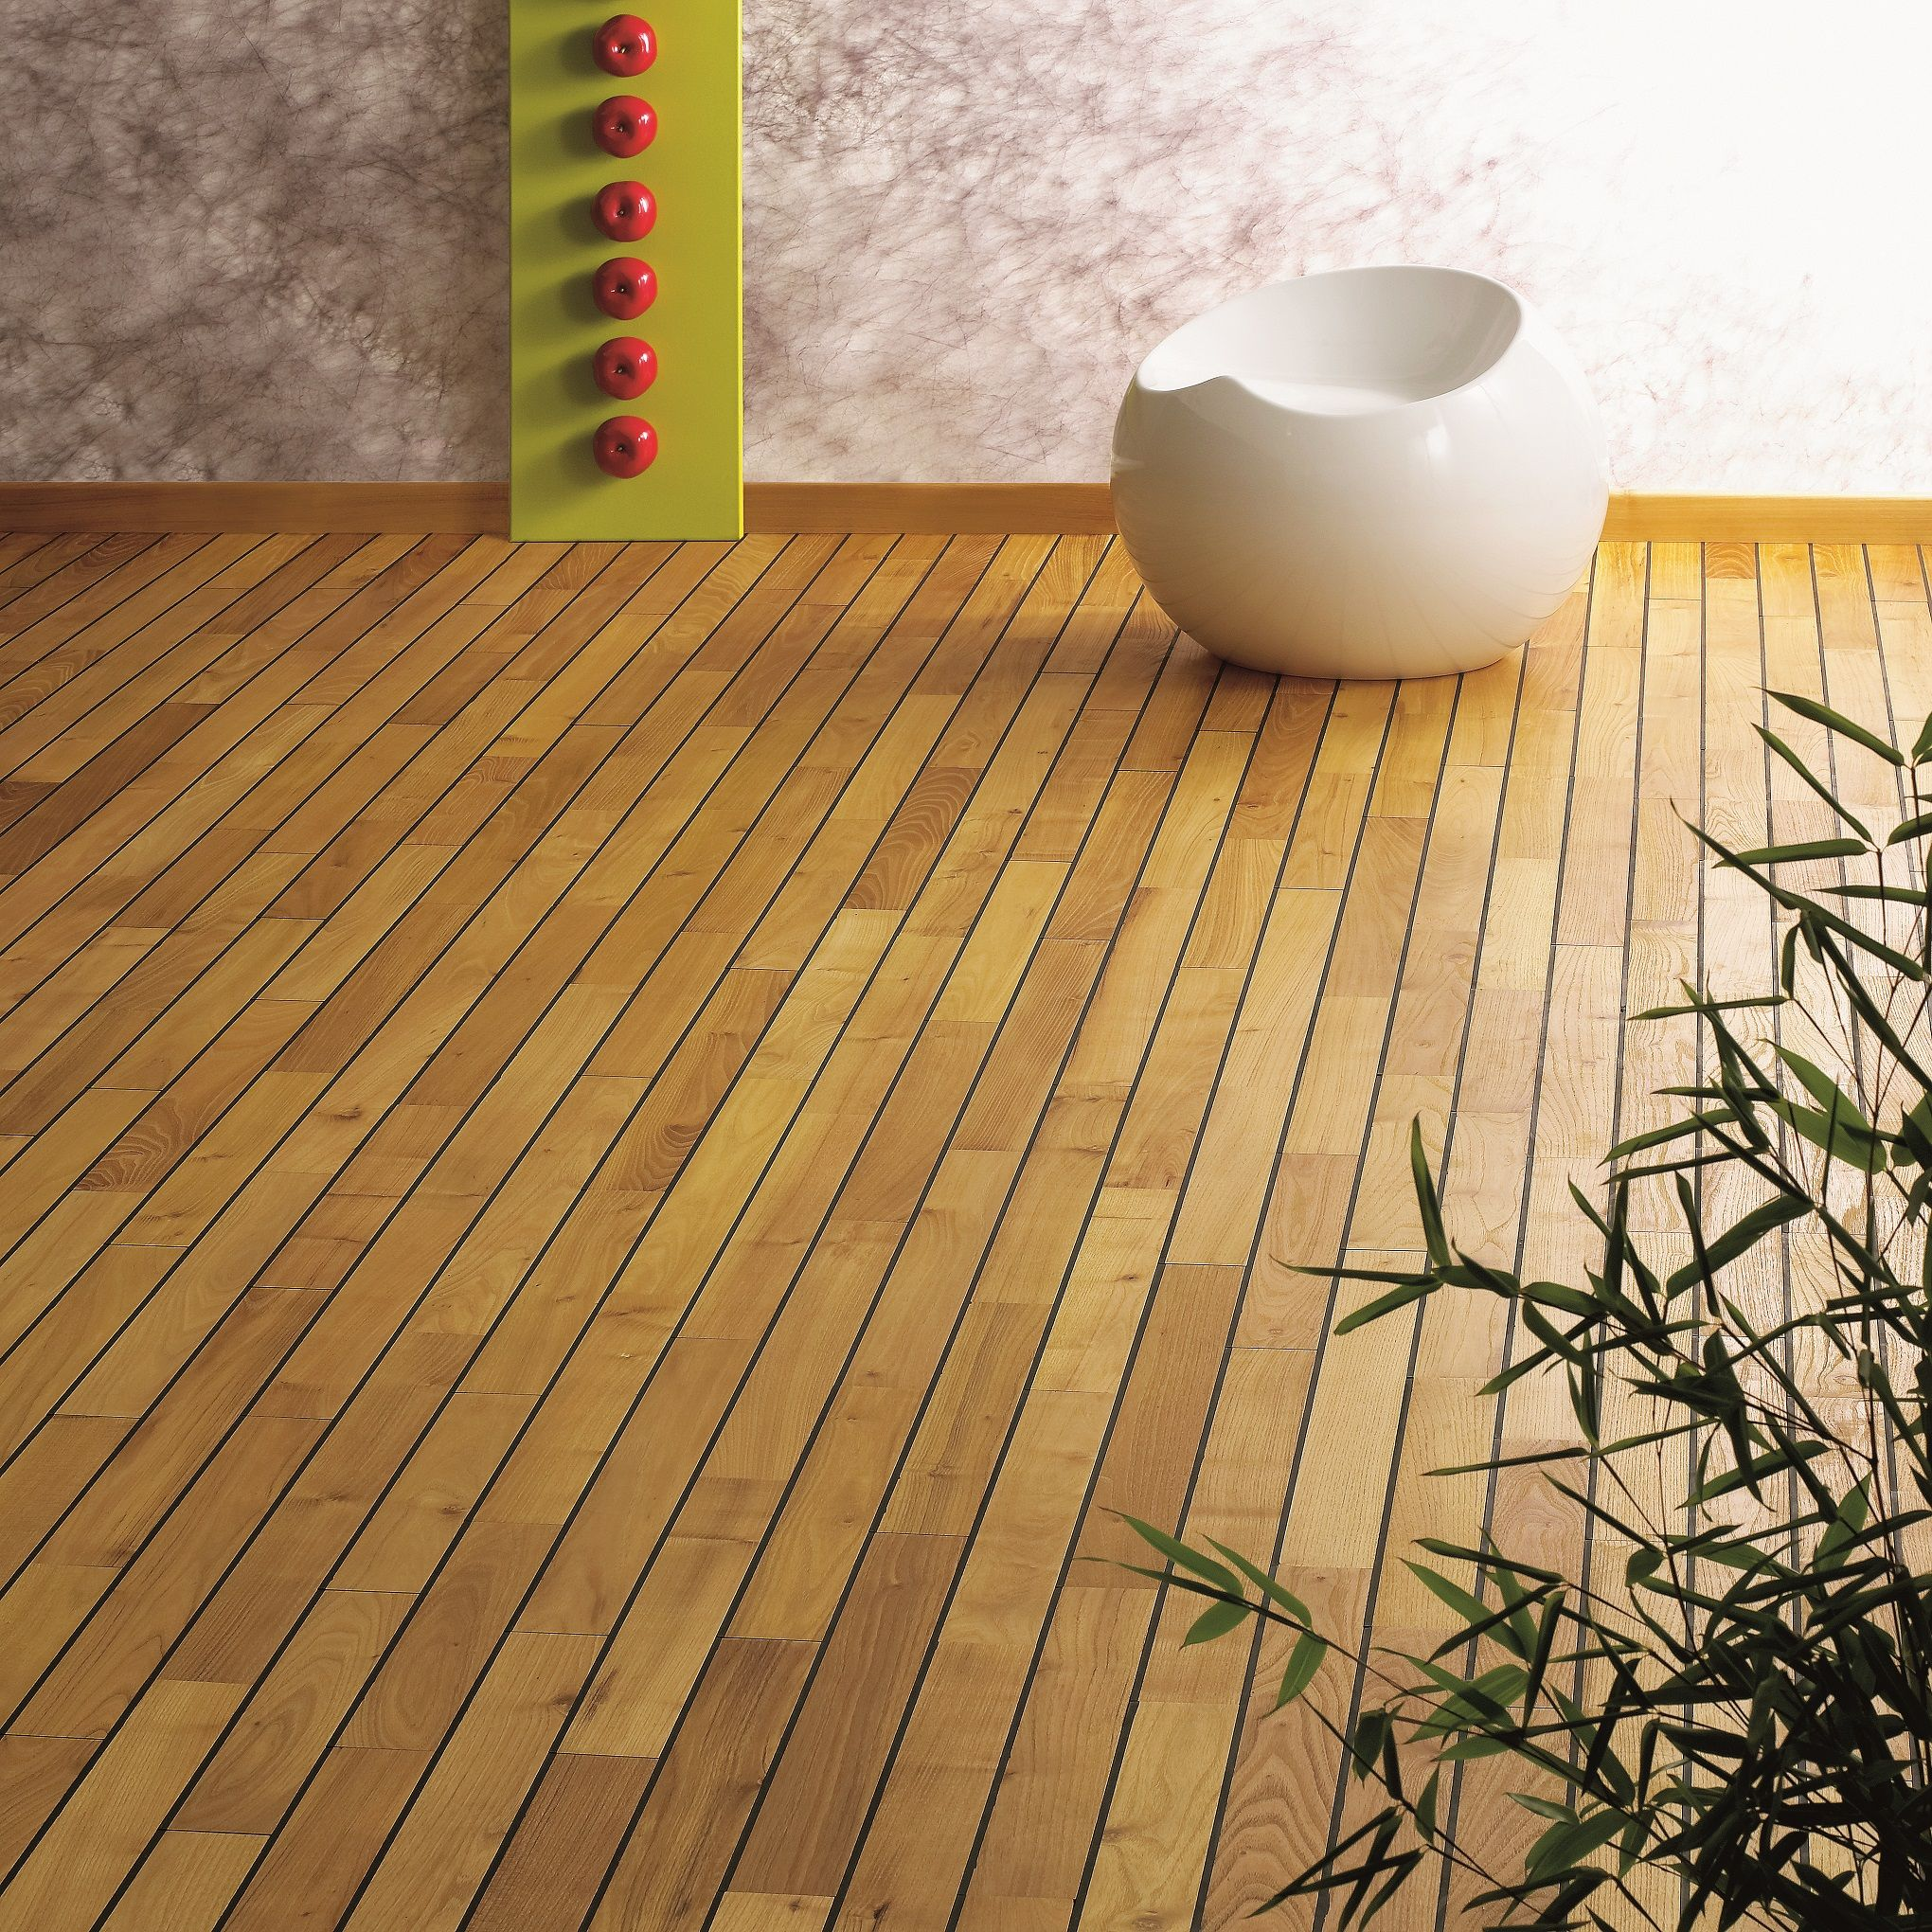 Acacia Navylam+ is a unique hardwood floor parquet system